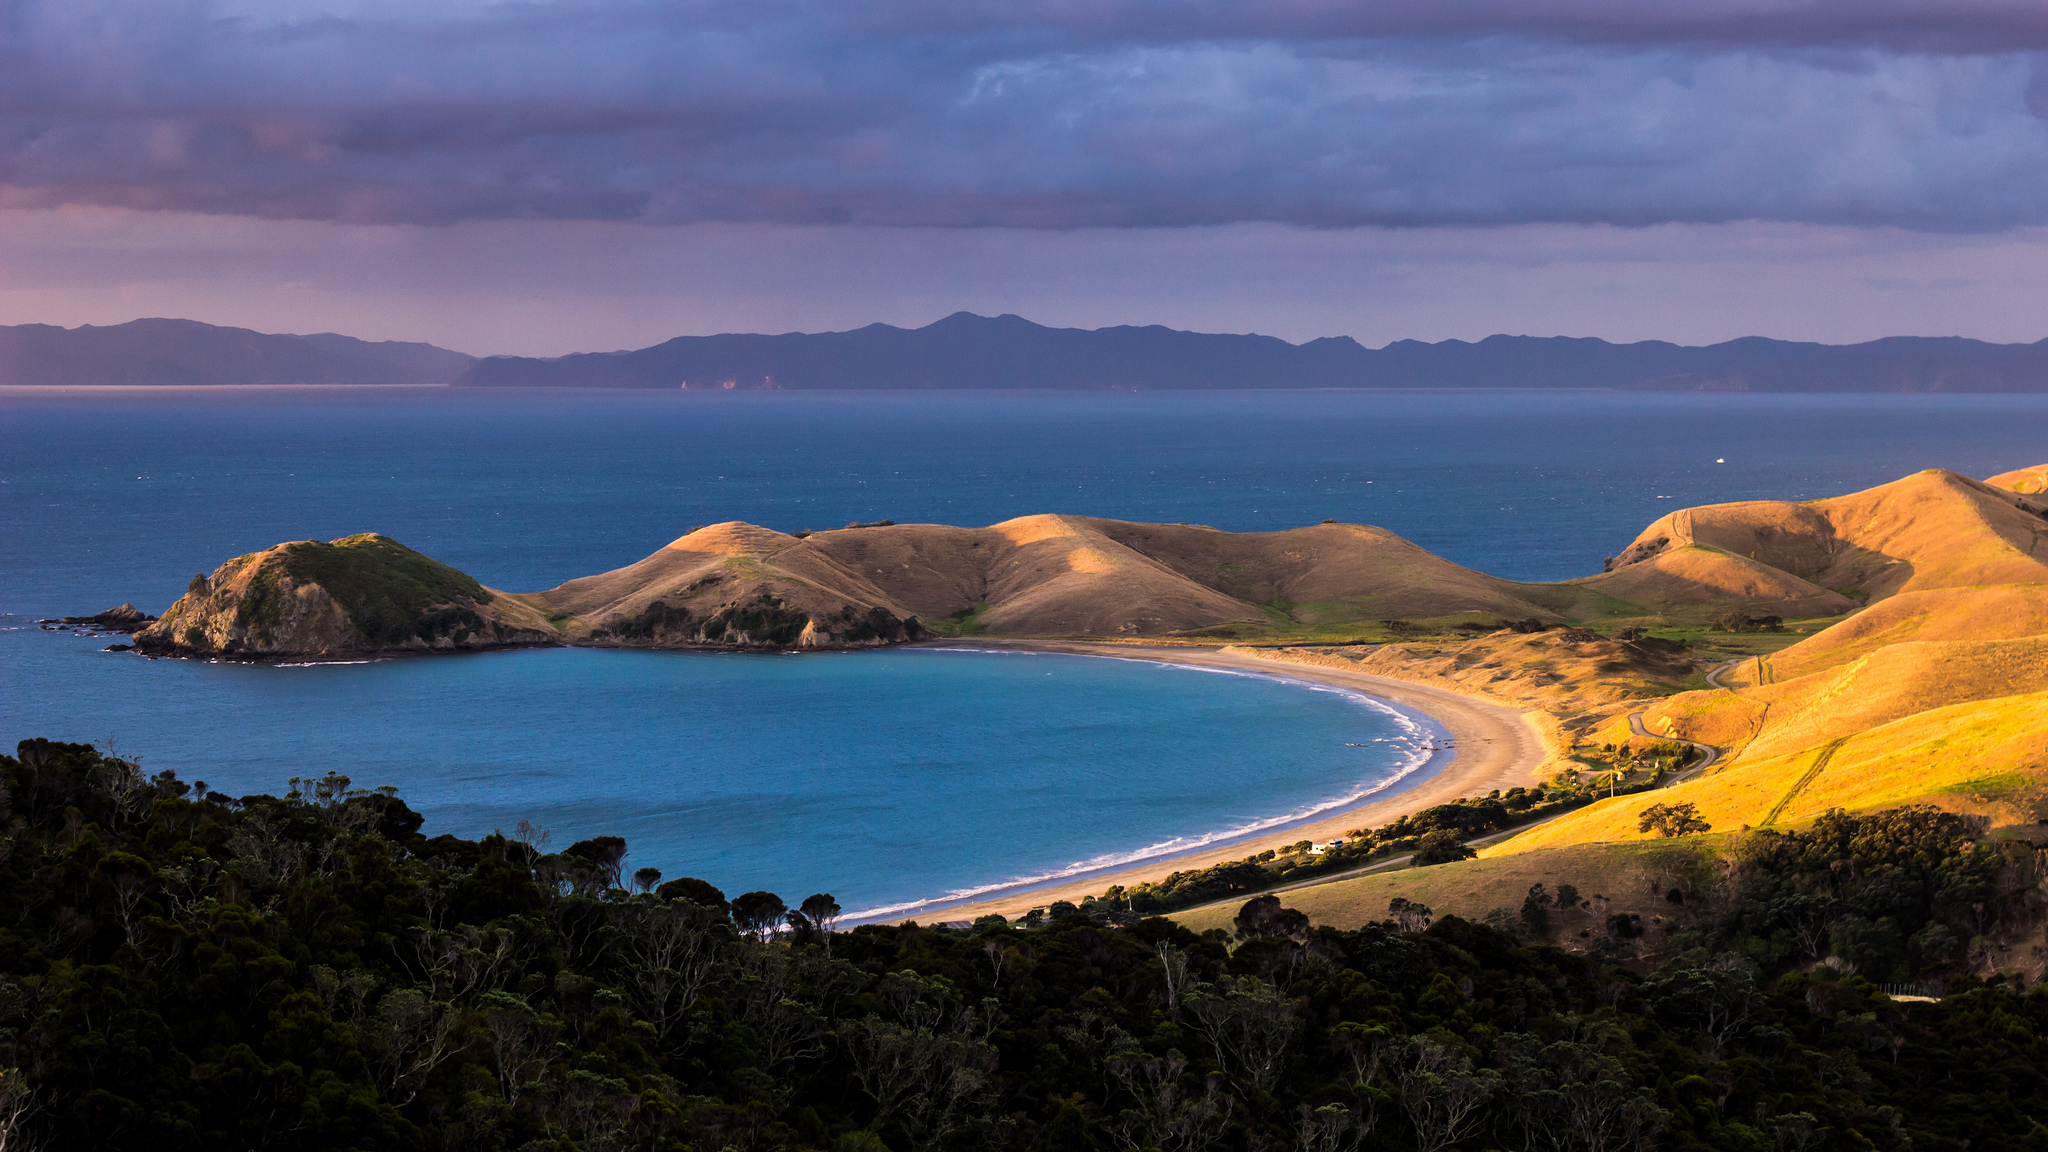 Guide to New Zealand trekking holidays: From Coromandel towards Great Barrier Island. flickr image by Alex Schwab